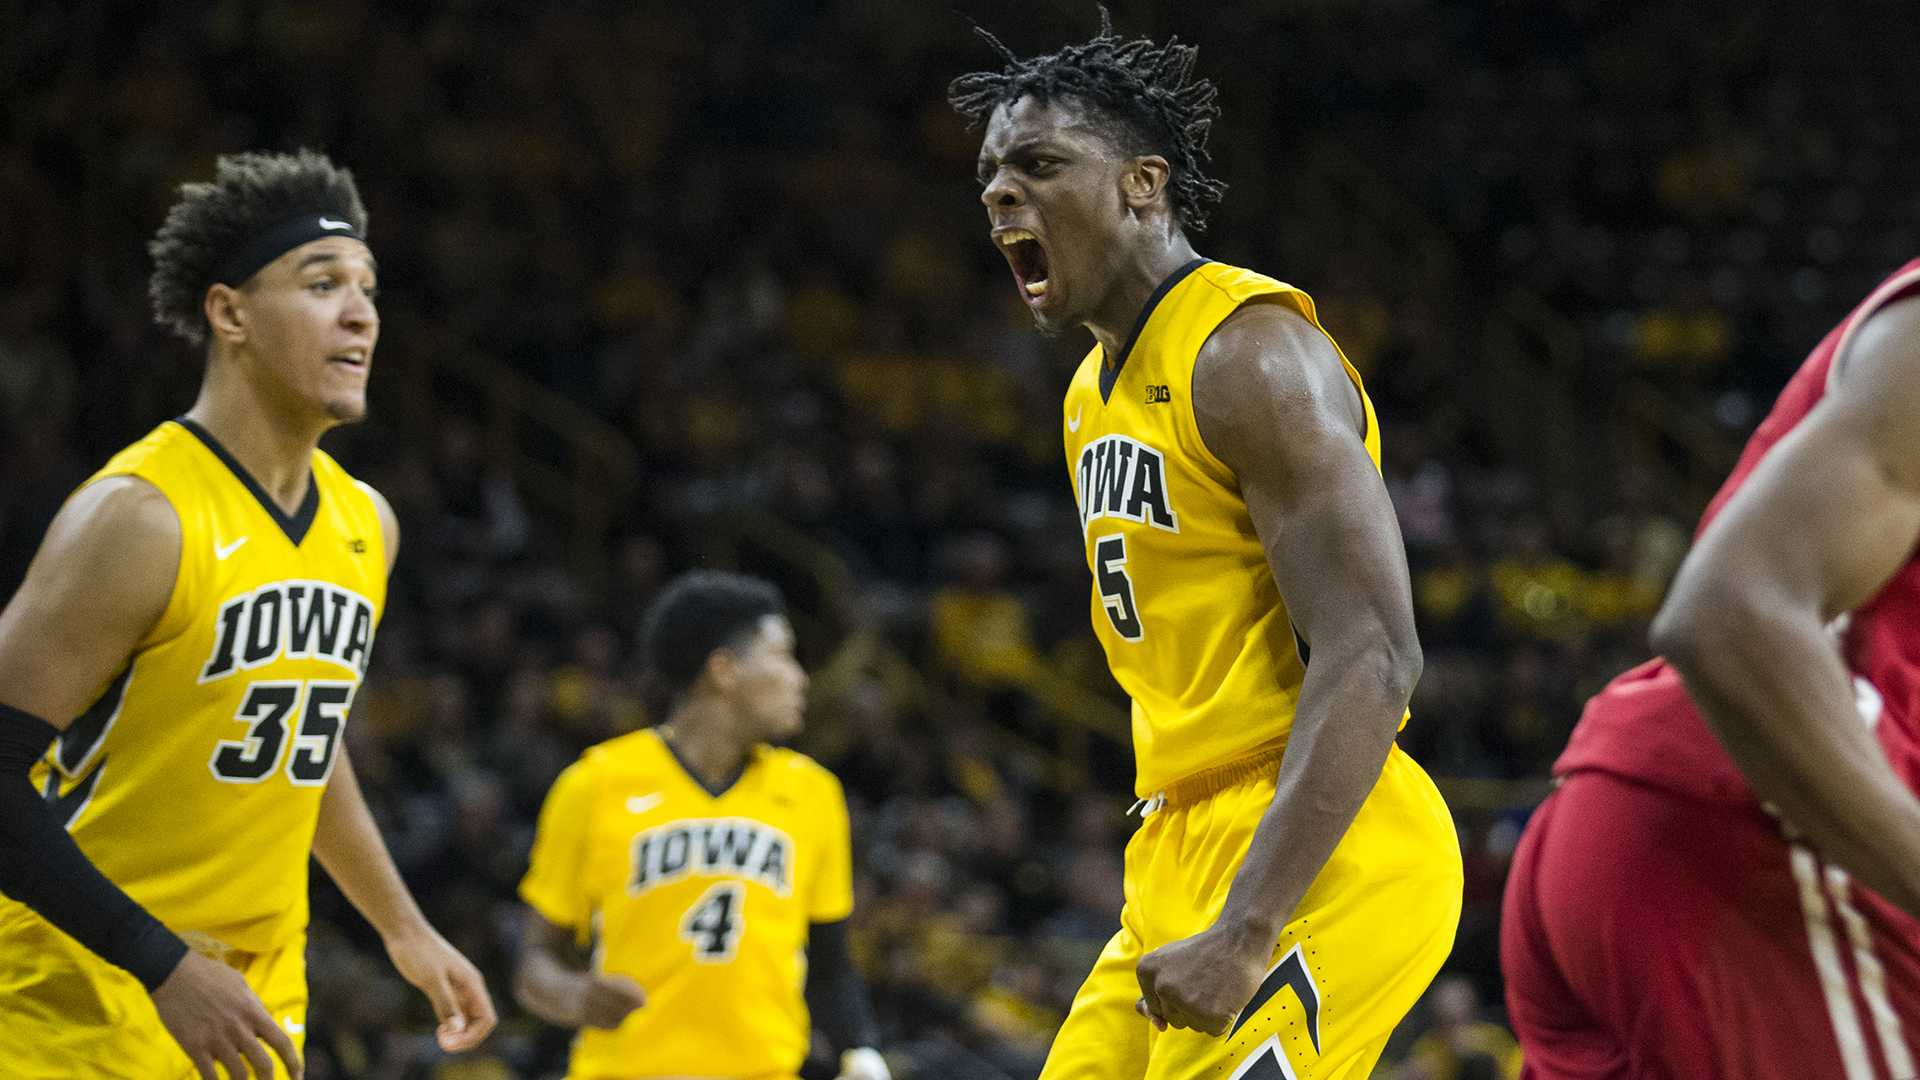 Iowa forward Tyler Cook (5) celebrates a dunk during the NCAA men's basketball game between Iowa and Wisconsin at Carver-Hawkeye Arena on Tuesday, Jan. 23, 2018. The Hawkeyes are going into the game with a conference record of 1-7. Iowa went on to defeat Wisconsin 85-67. (Ben Allan Smith/The Daily Iowan)